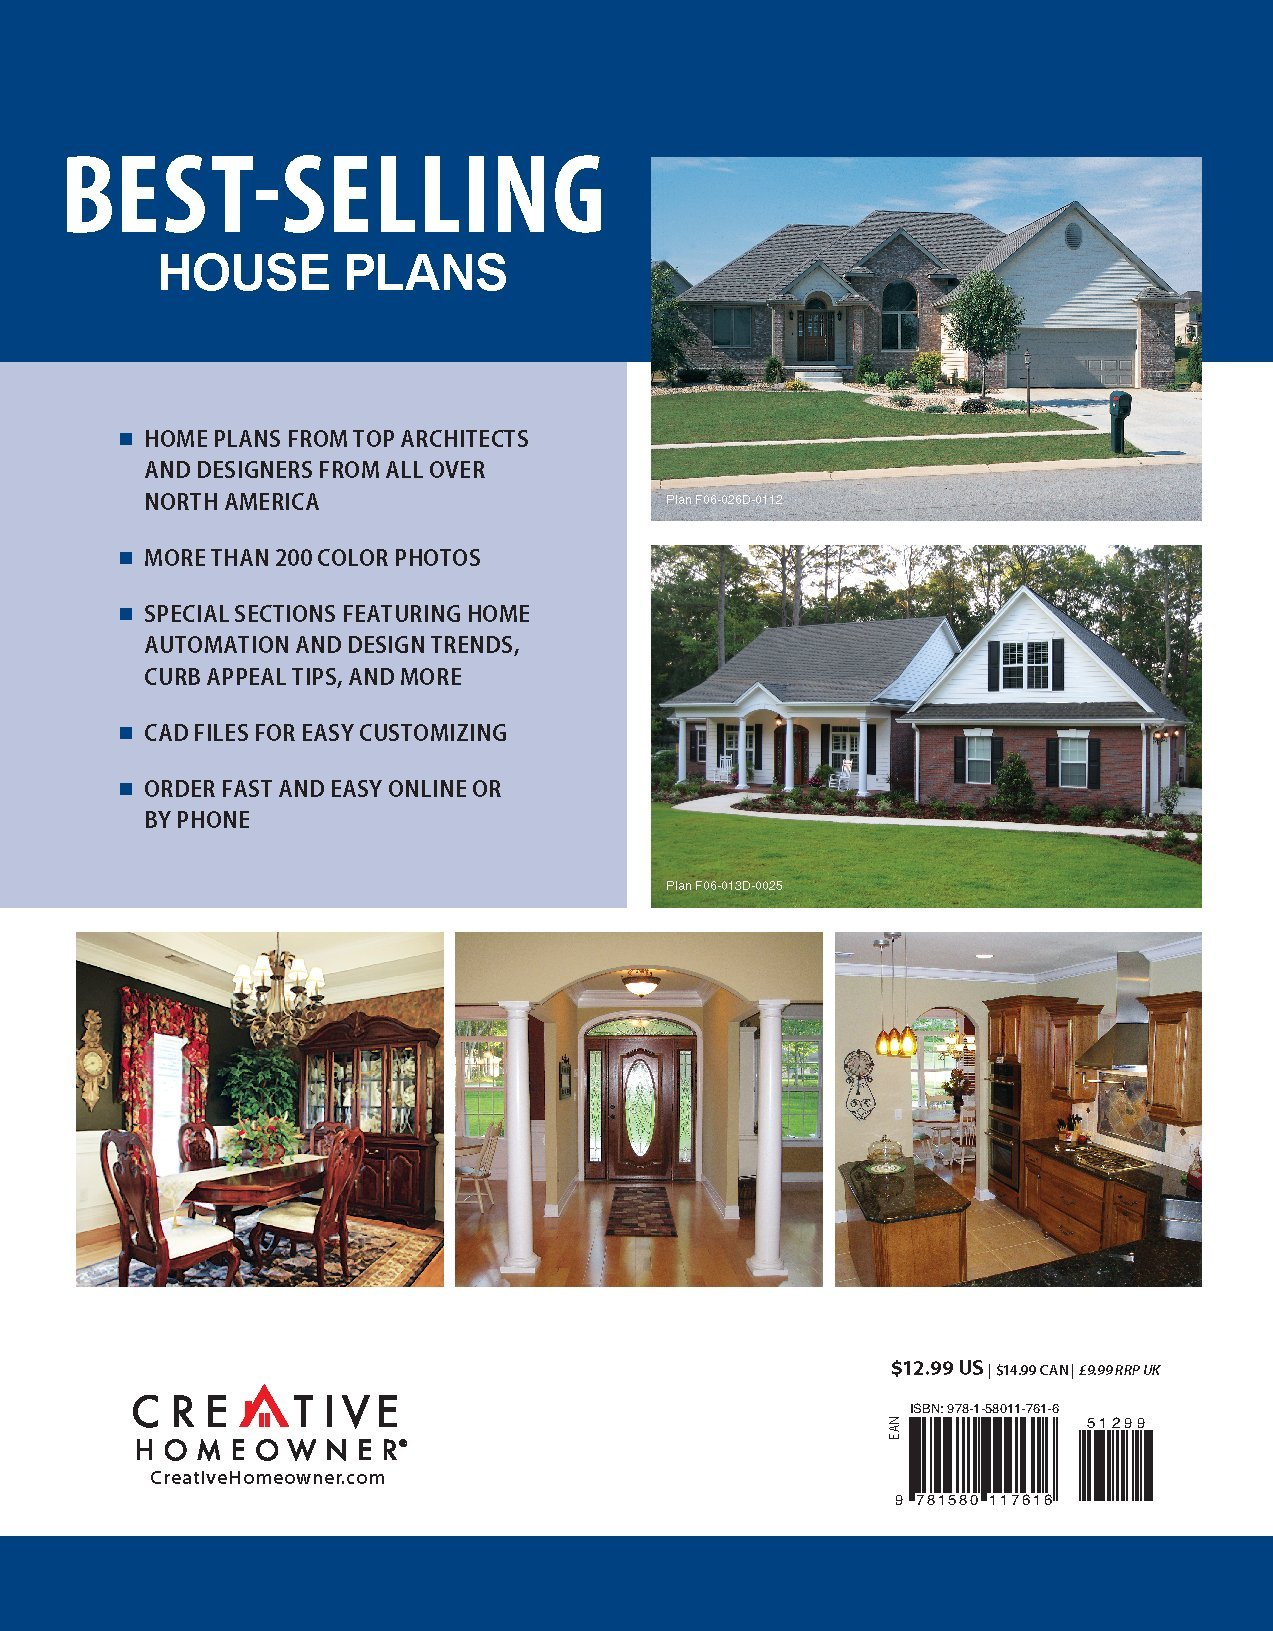 Surprising best selling house plans gallery exterior for Best selling home plan